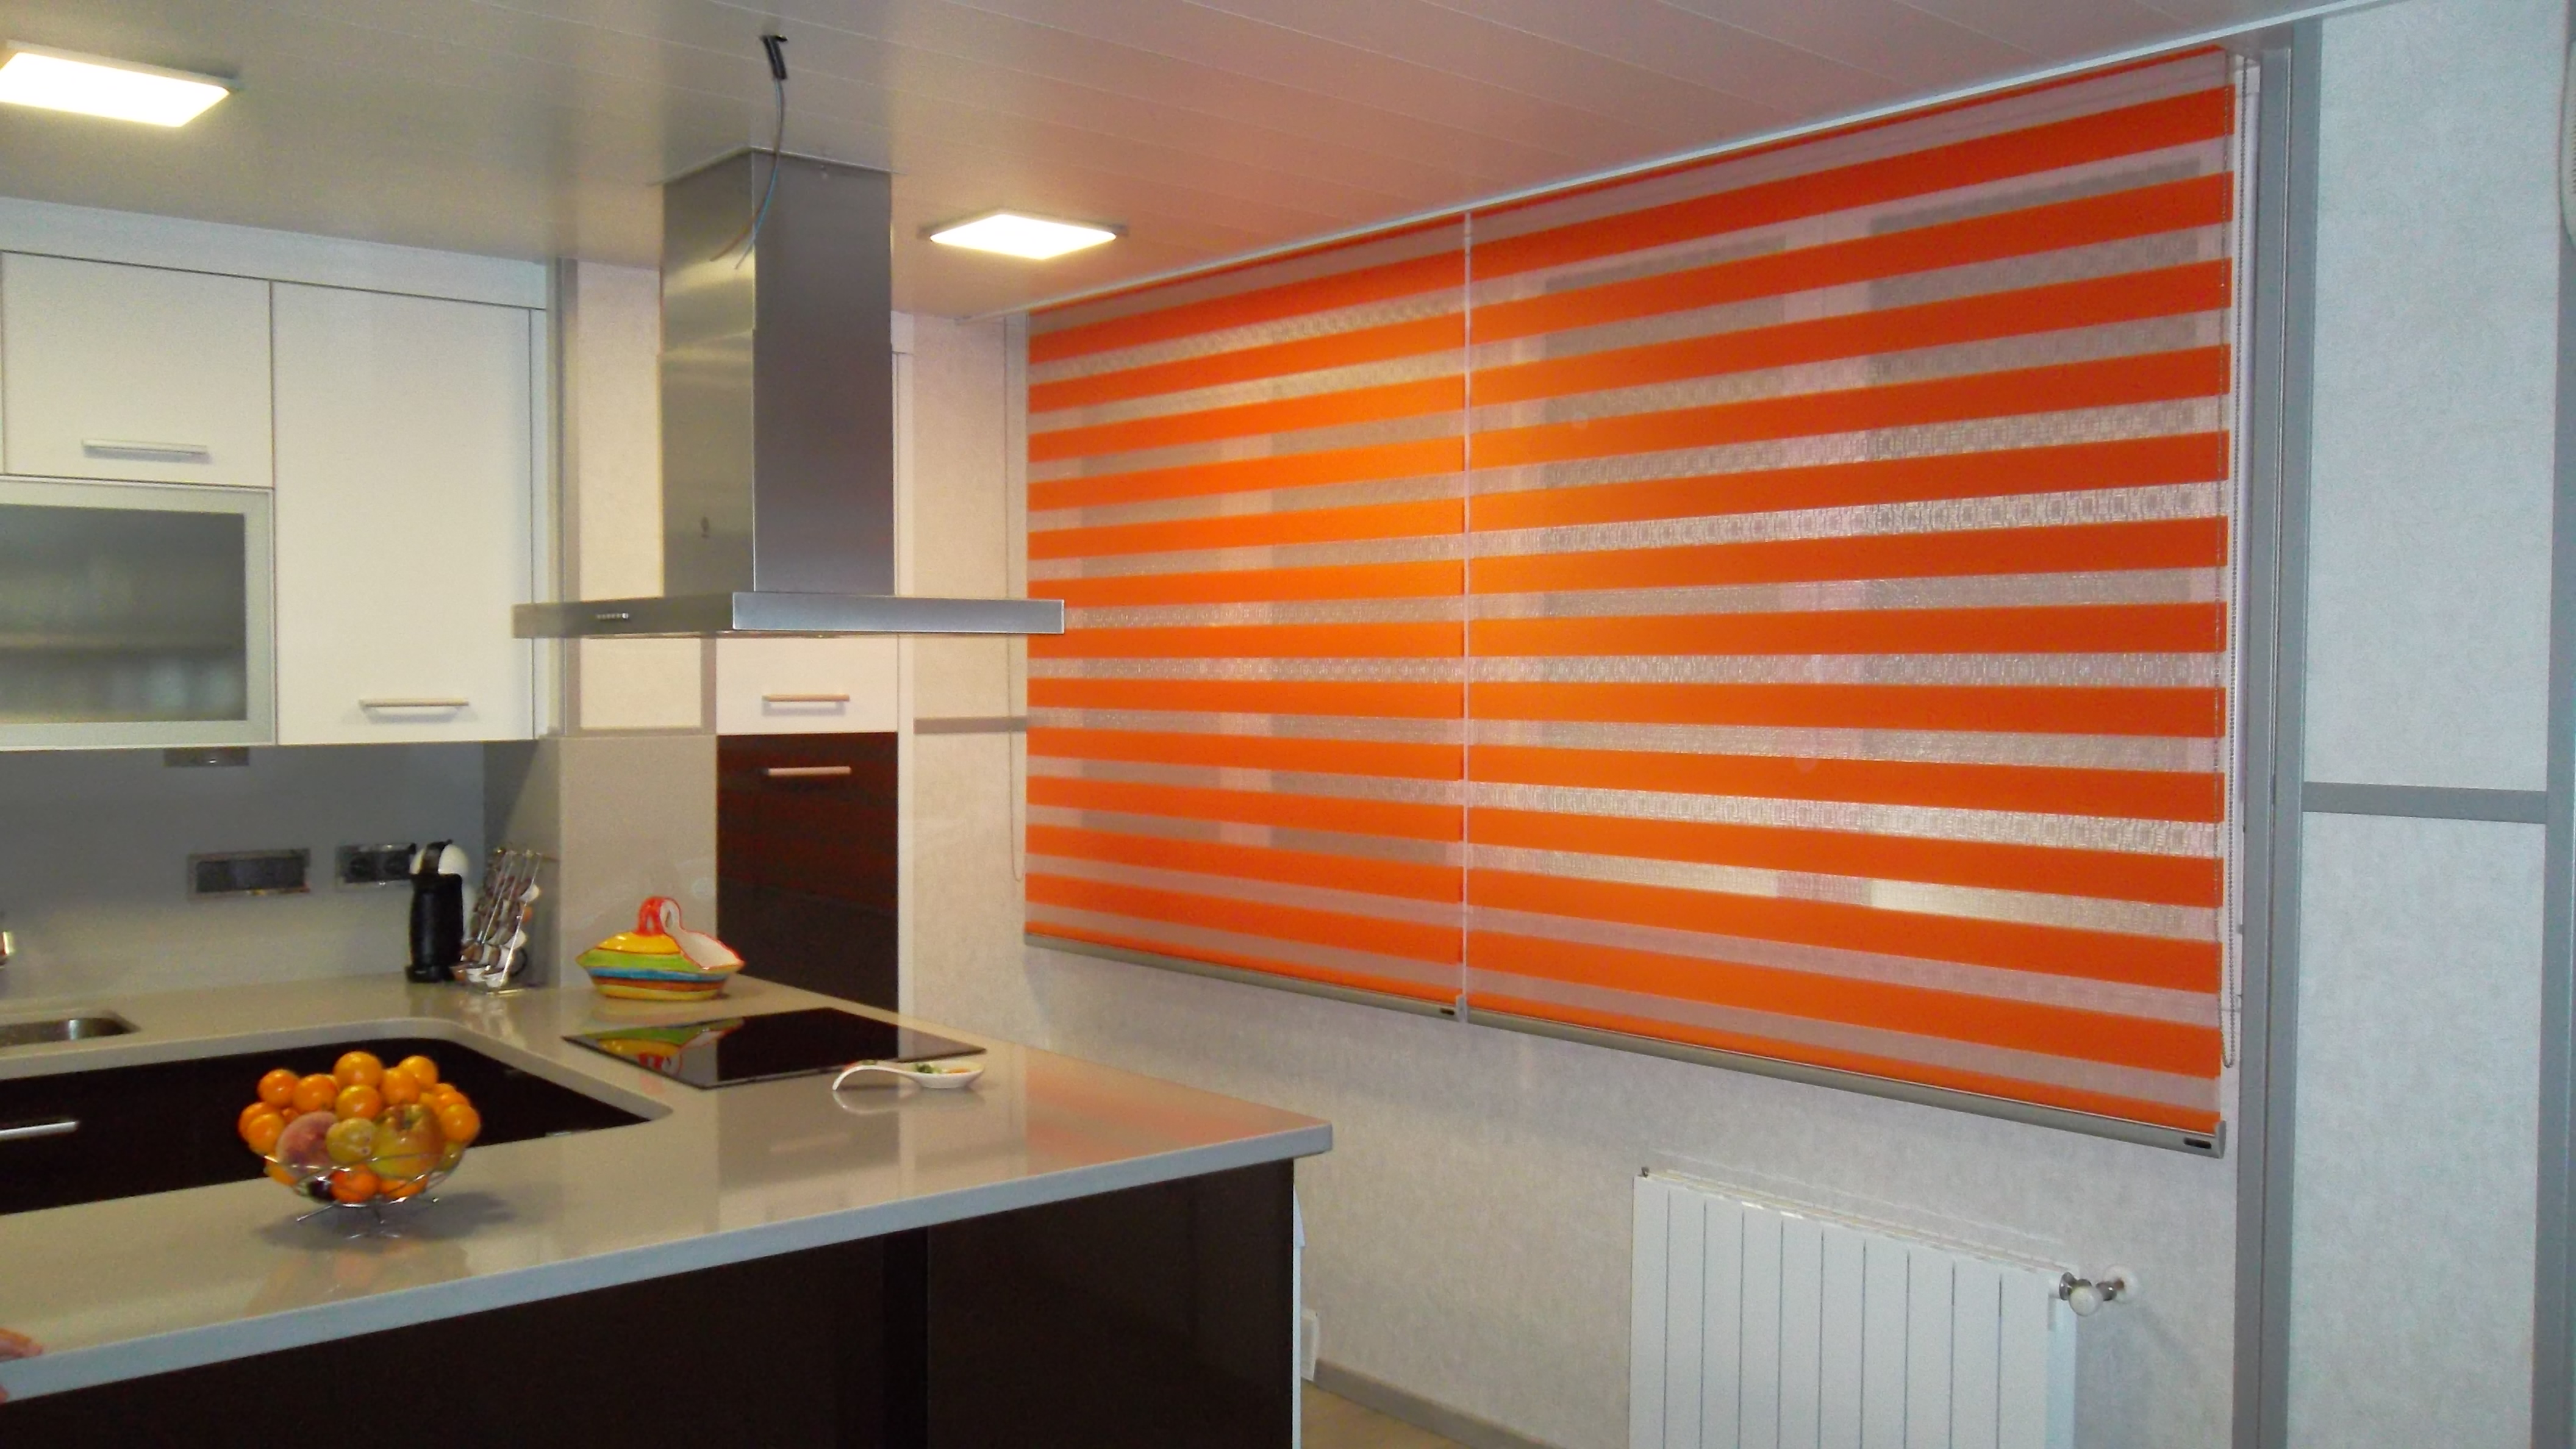 Cortina enrollables noche y d a solardeco - Cortinas estores enrollables ...